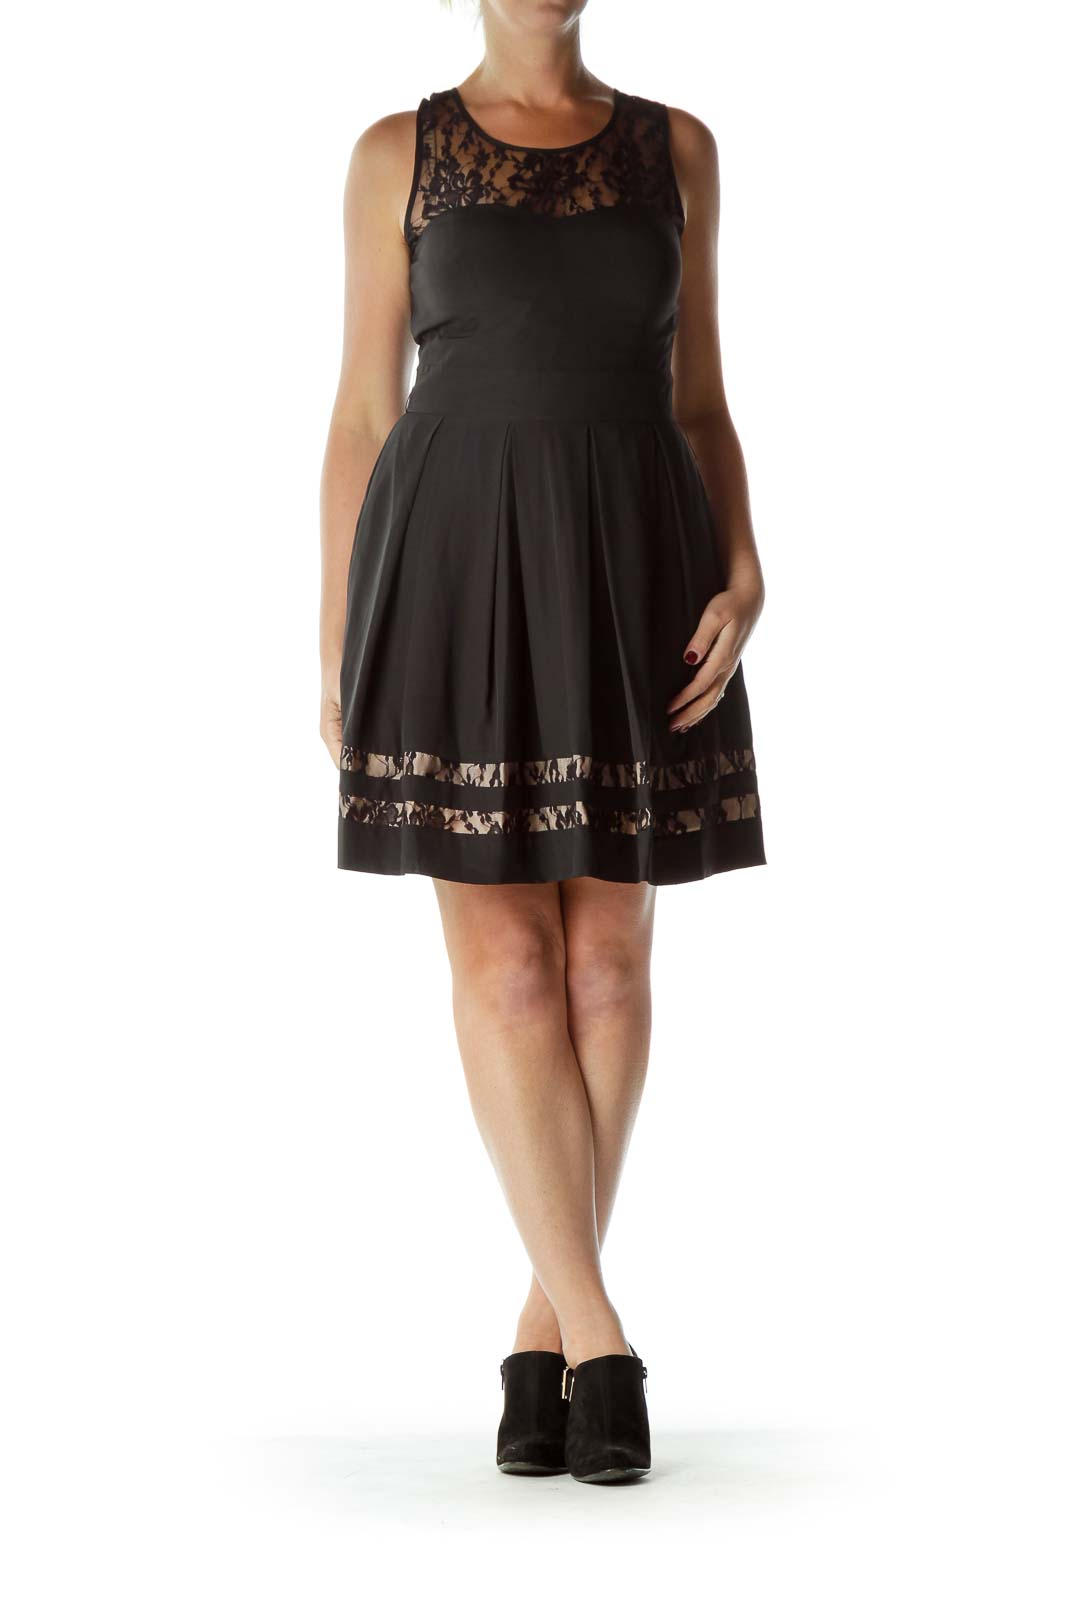 Black Lace Empire Waists Cocktail Dress